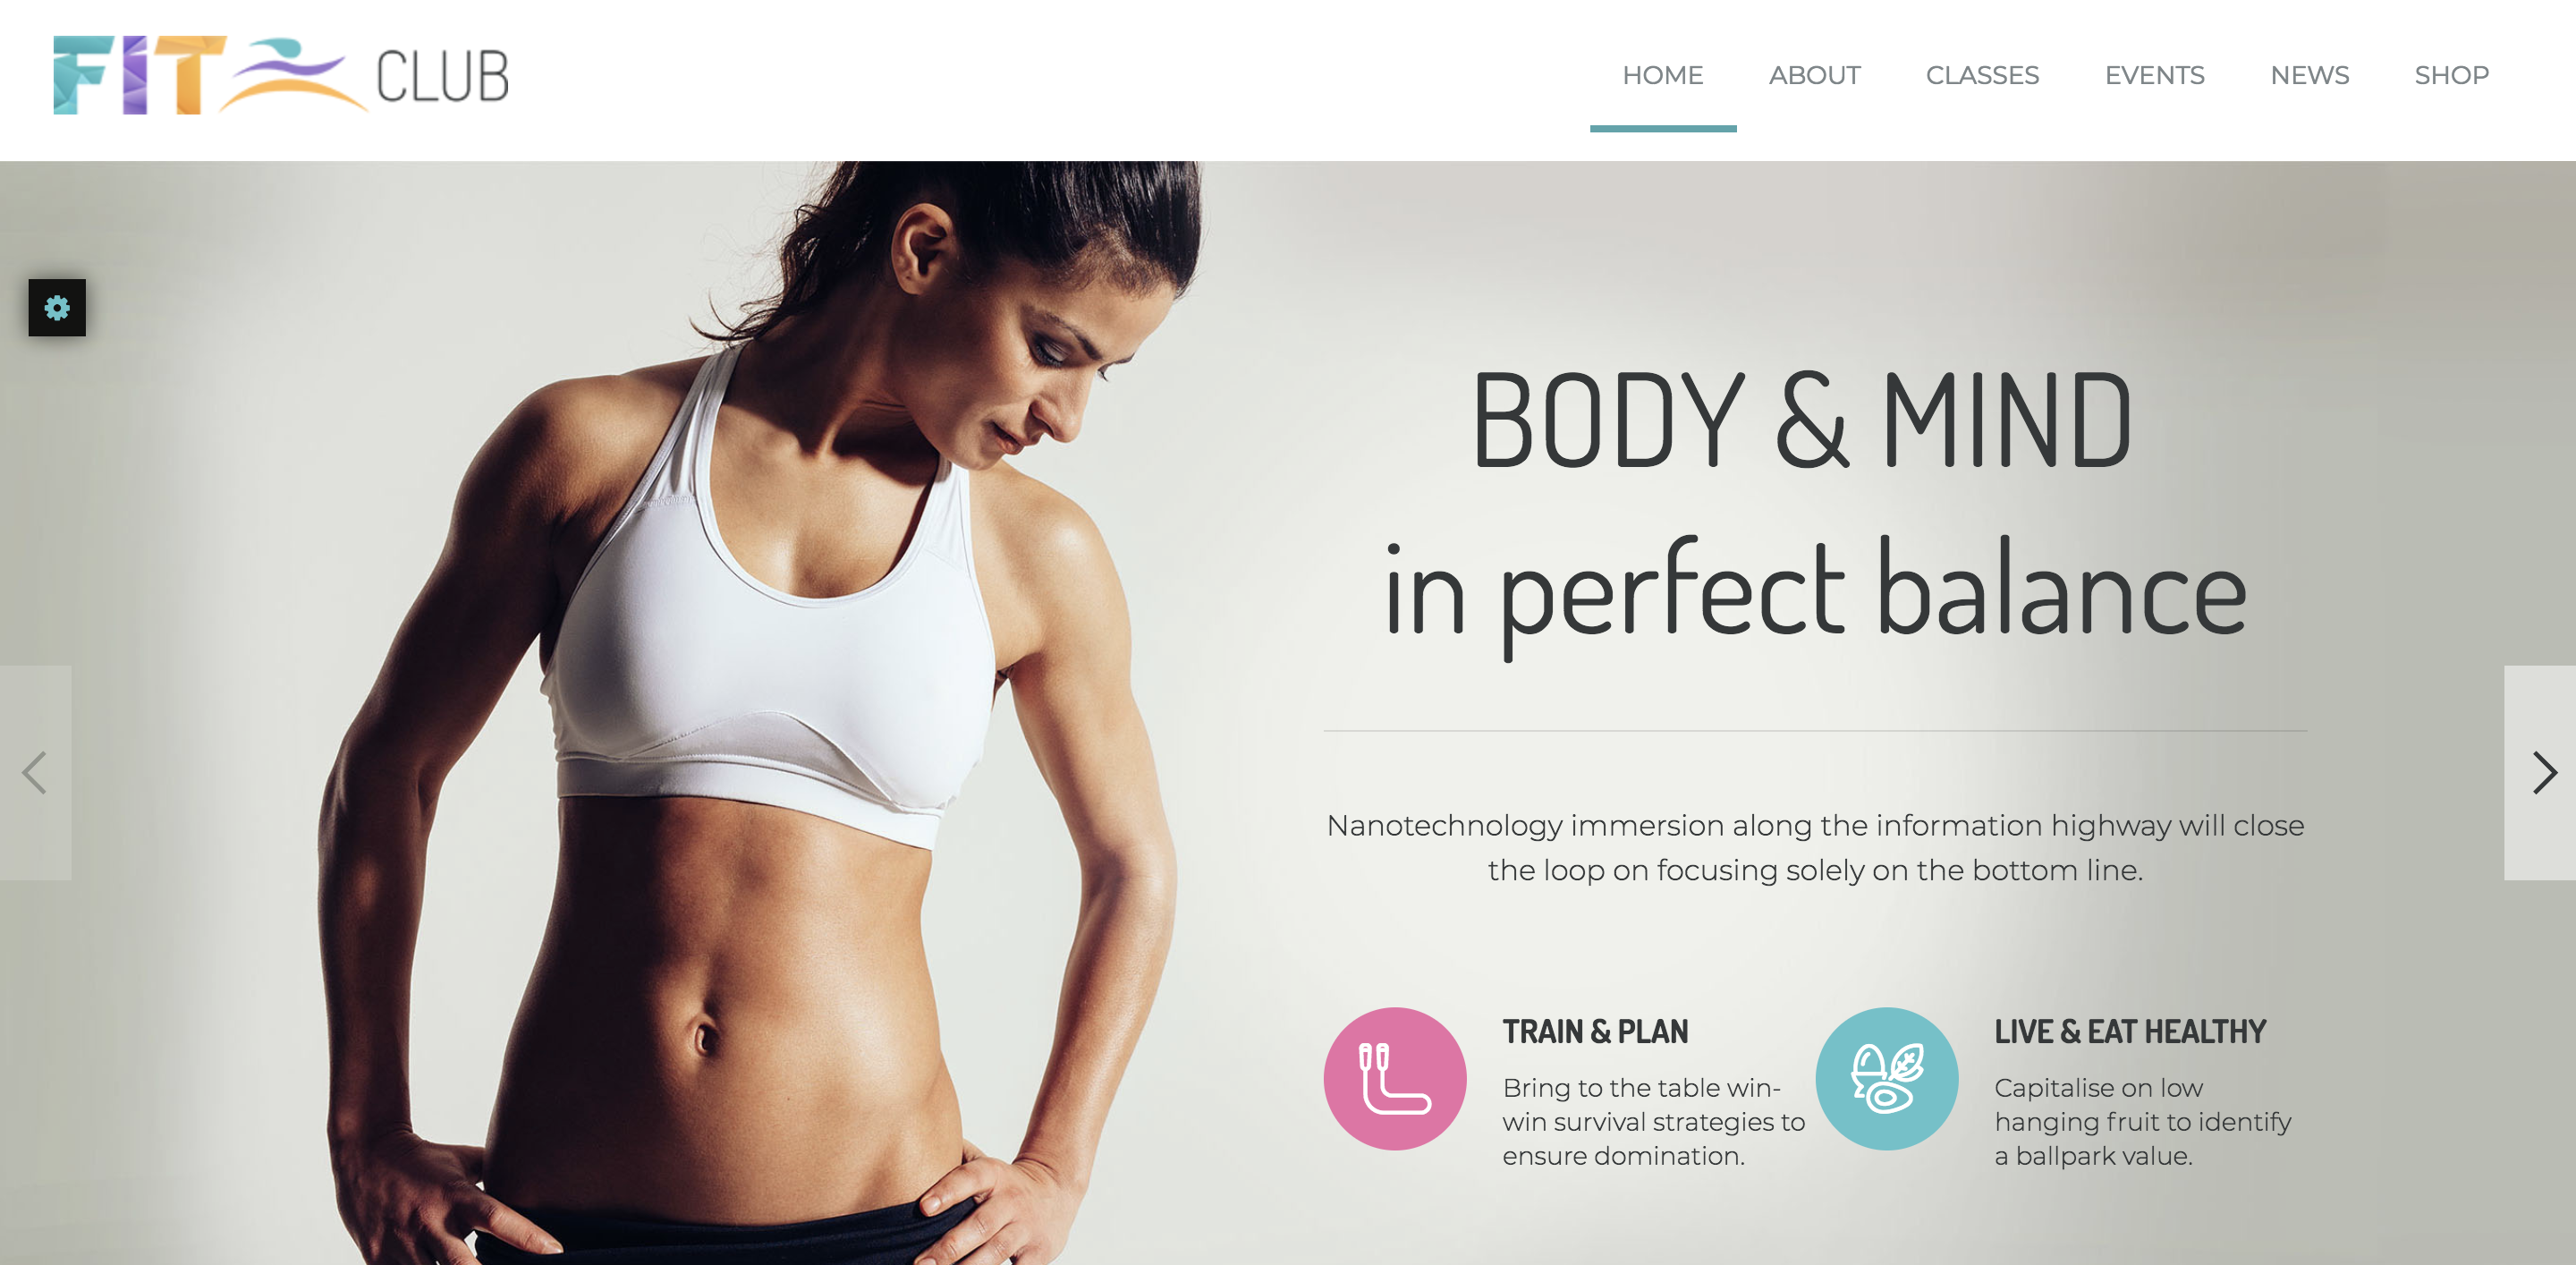 Fitness Club - Health & Fitness WordPress Theme.png